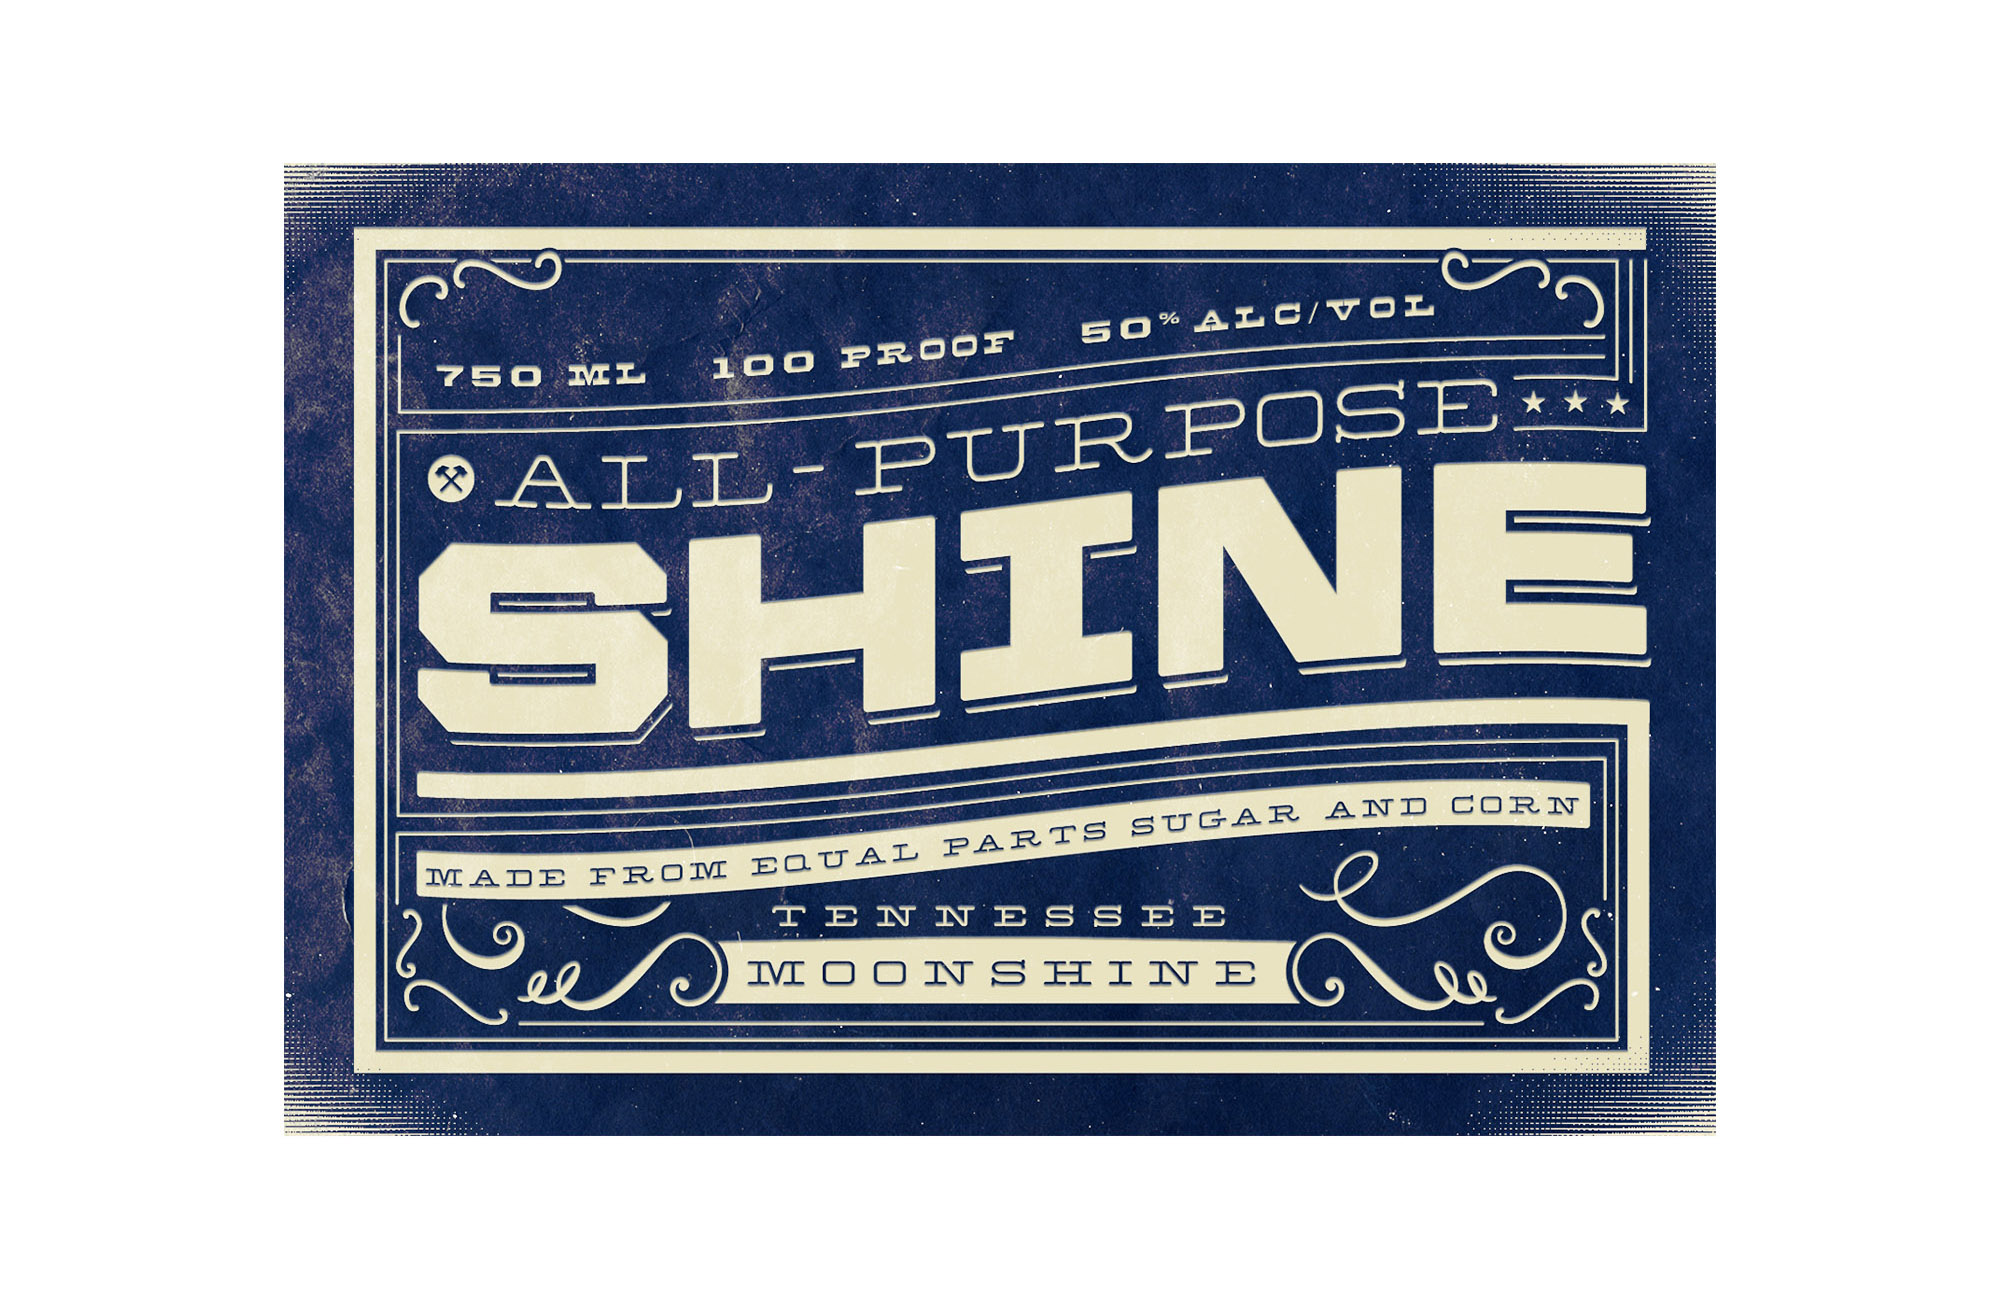 All-Purpose-Shine-The-Pharmacy